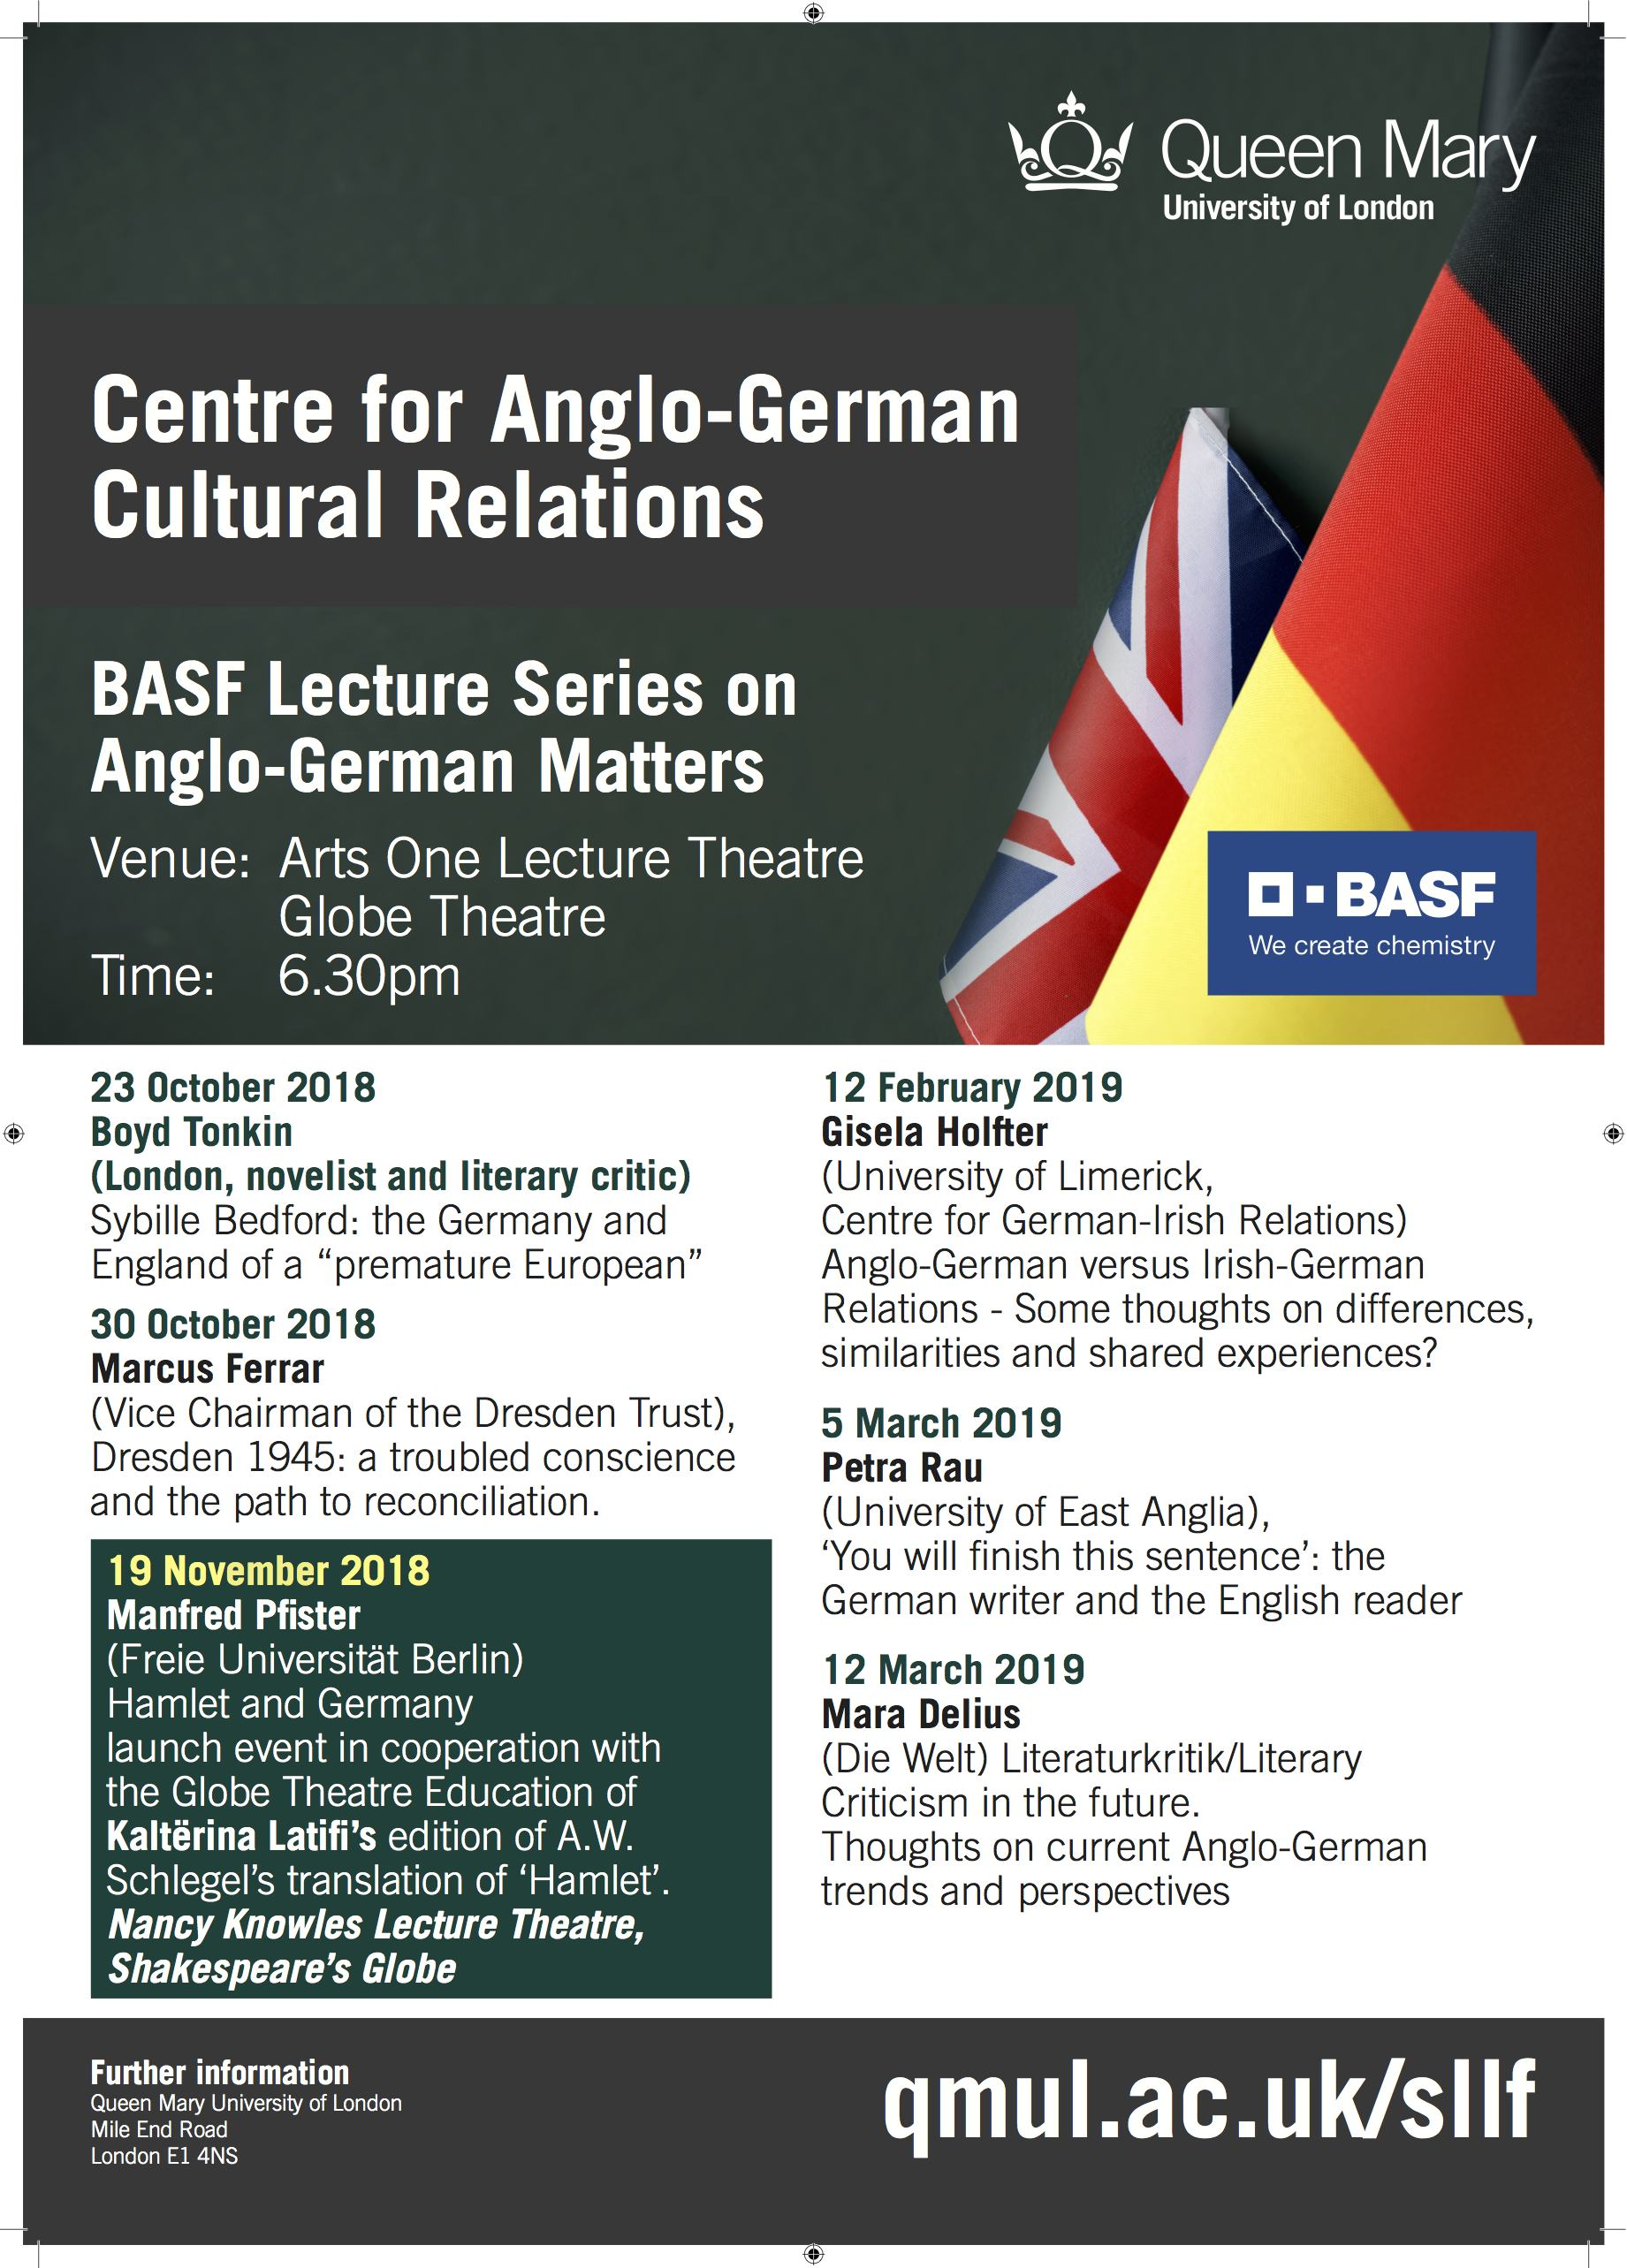 BASF Lecture Series 2018-19